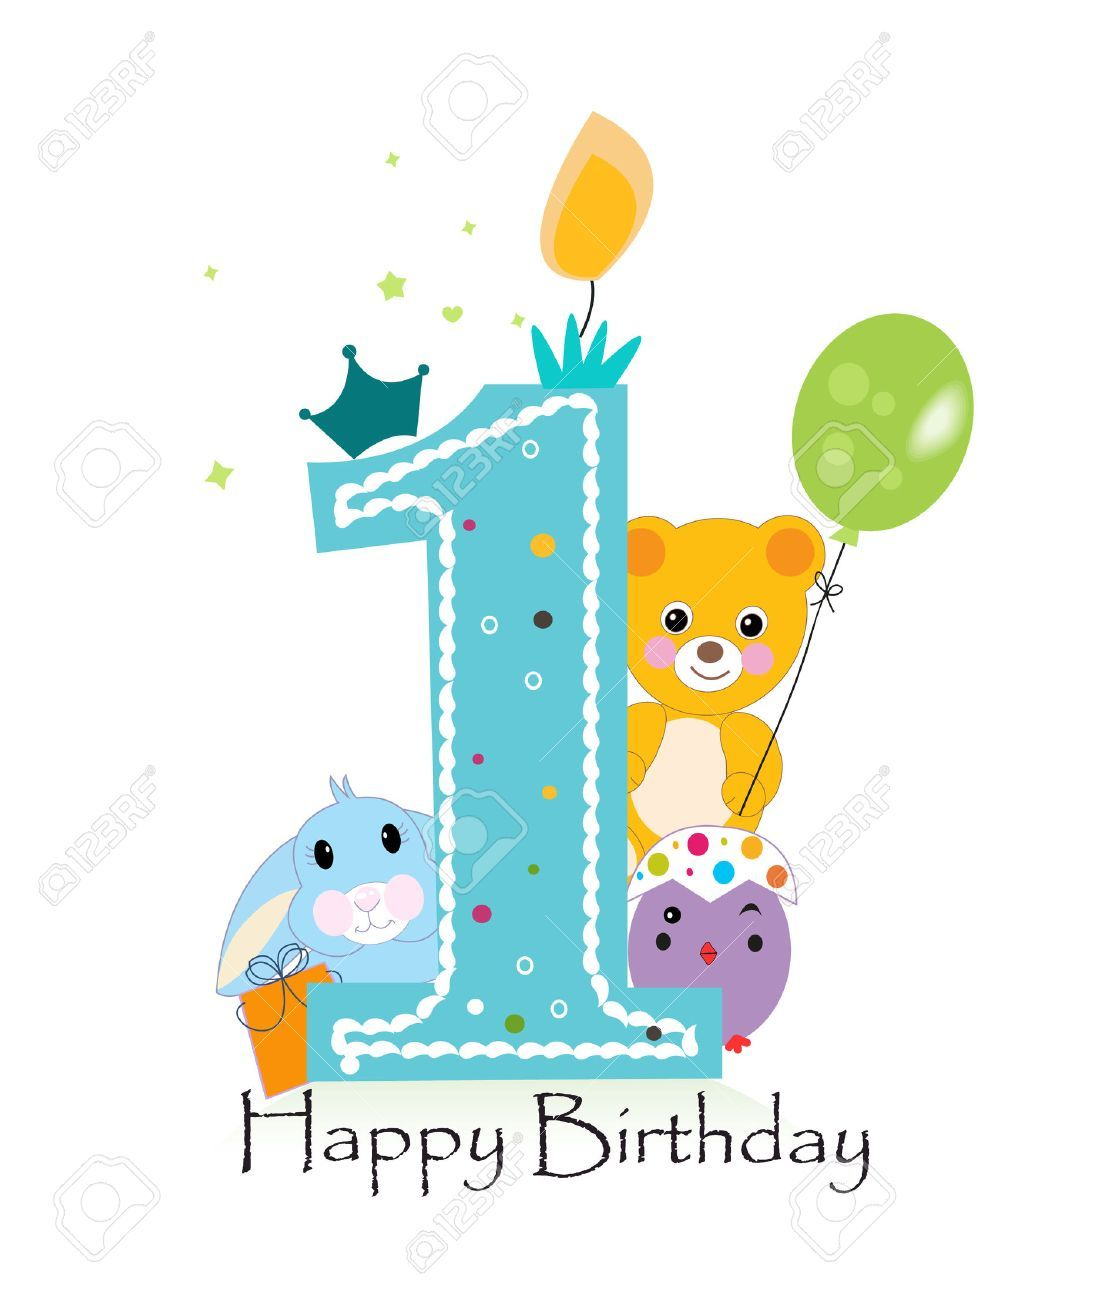 First birthday boy clipart 6 » Clipart Portal.